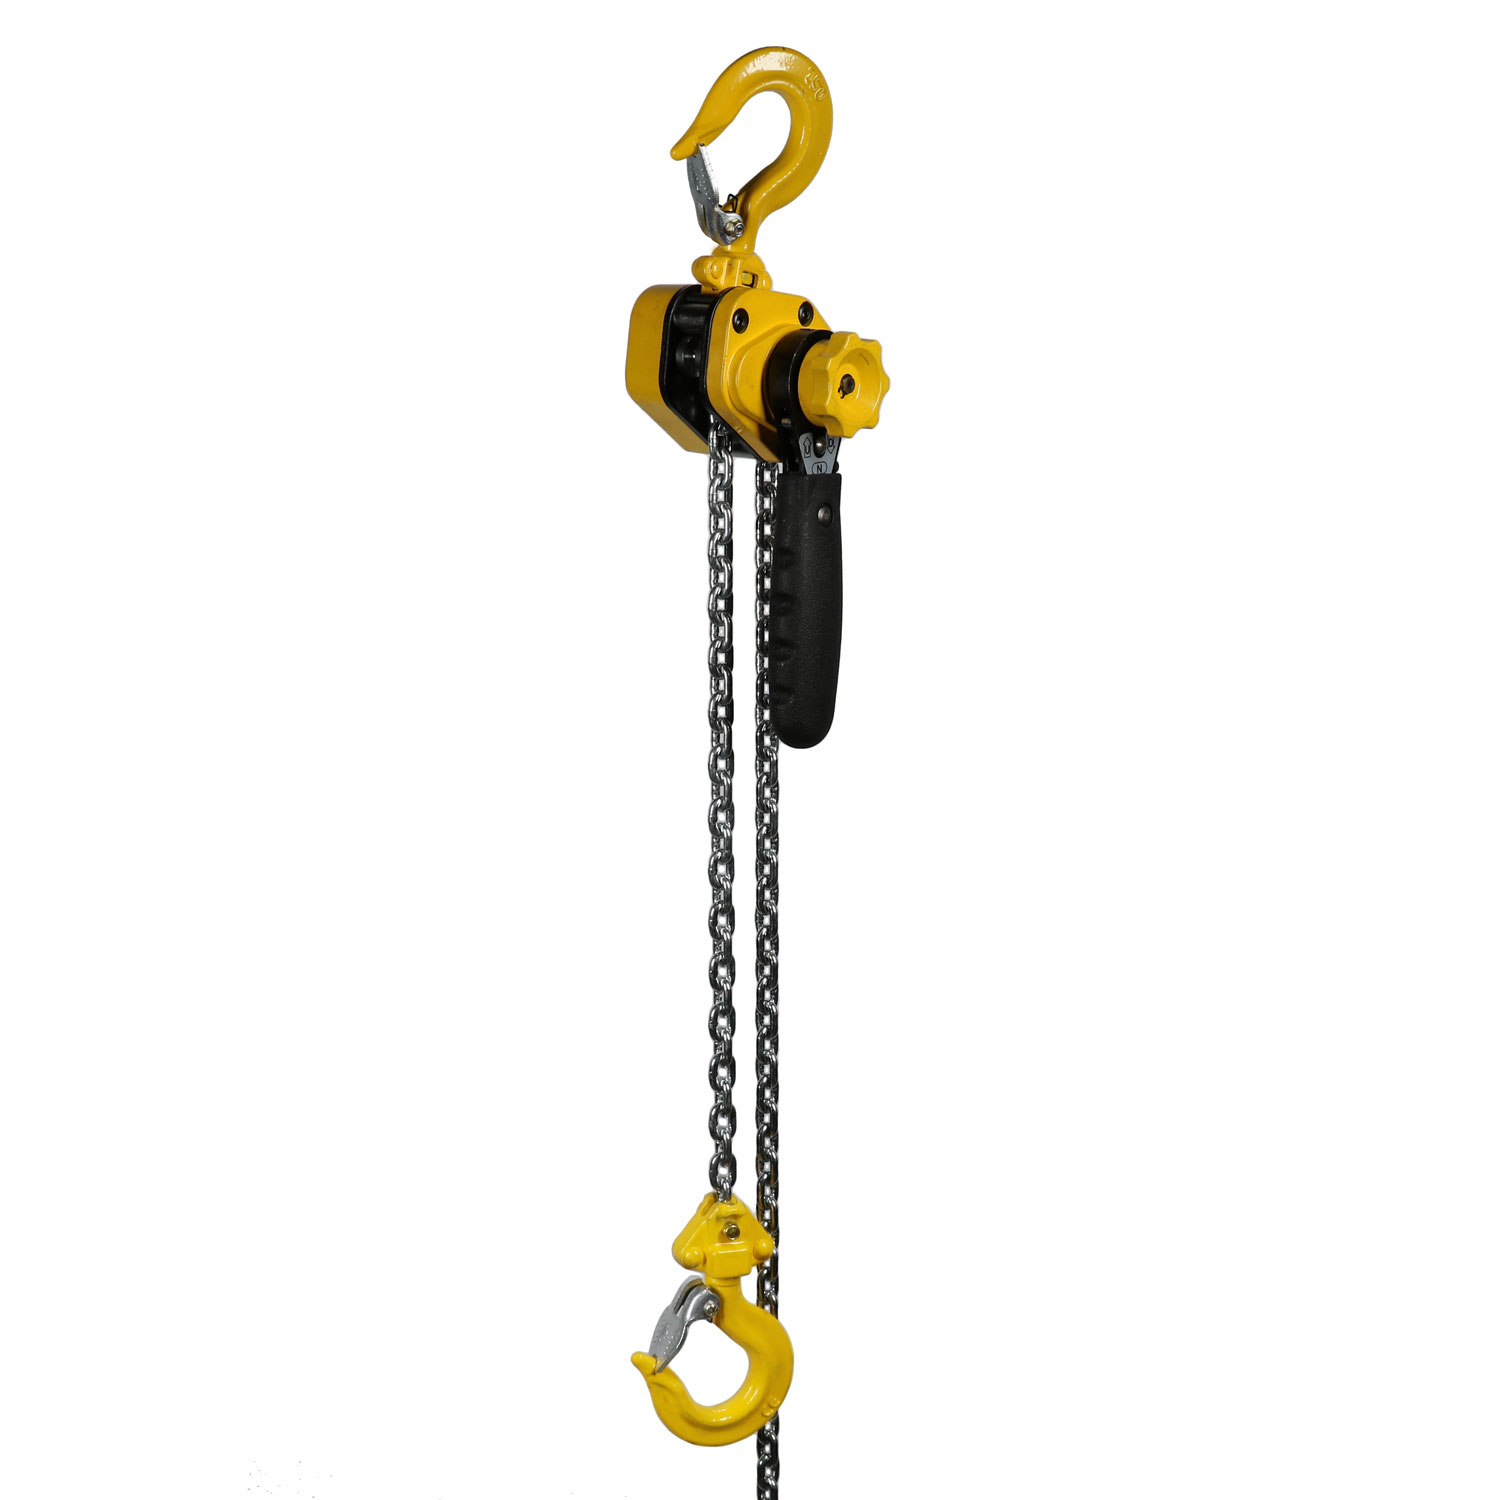 0.5 ton X 5 Foot Lift, Tyler Tool Lever Chain Hoist